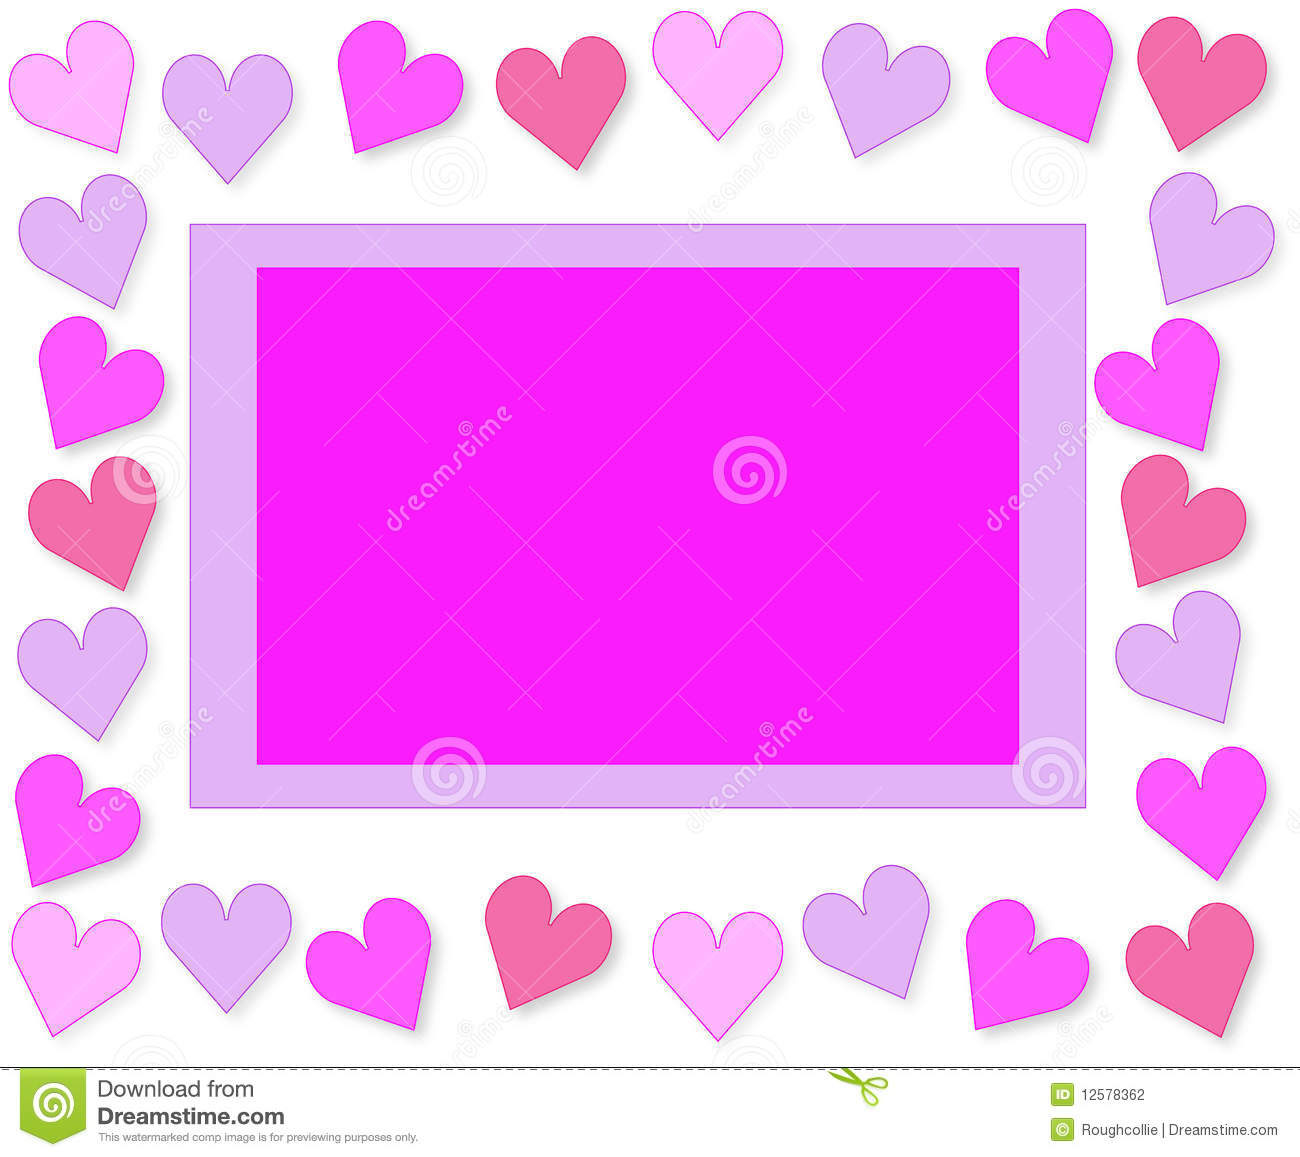 Love Hearts Valentine greetings card